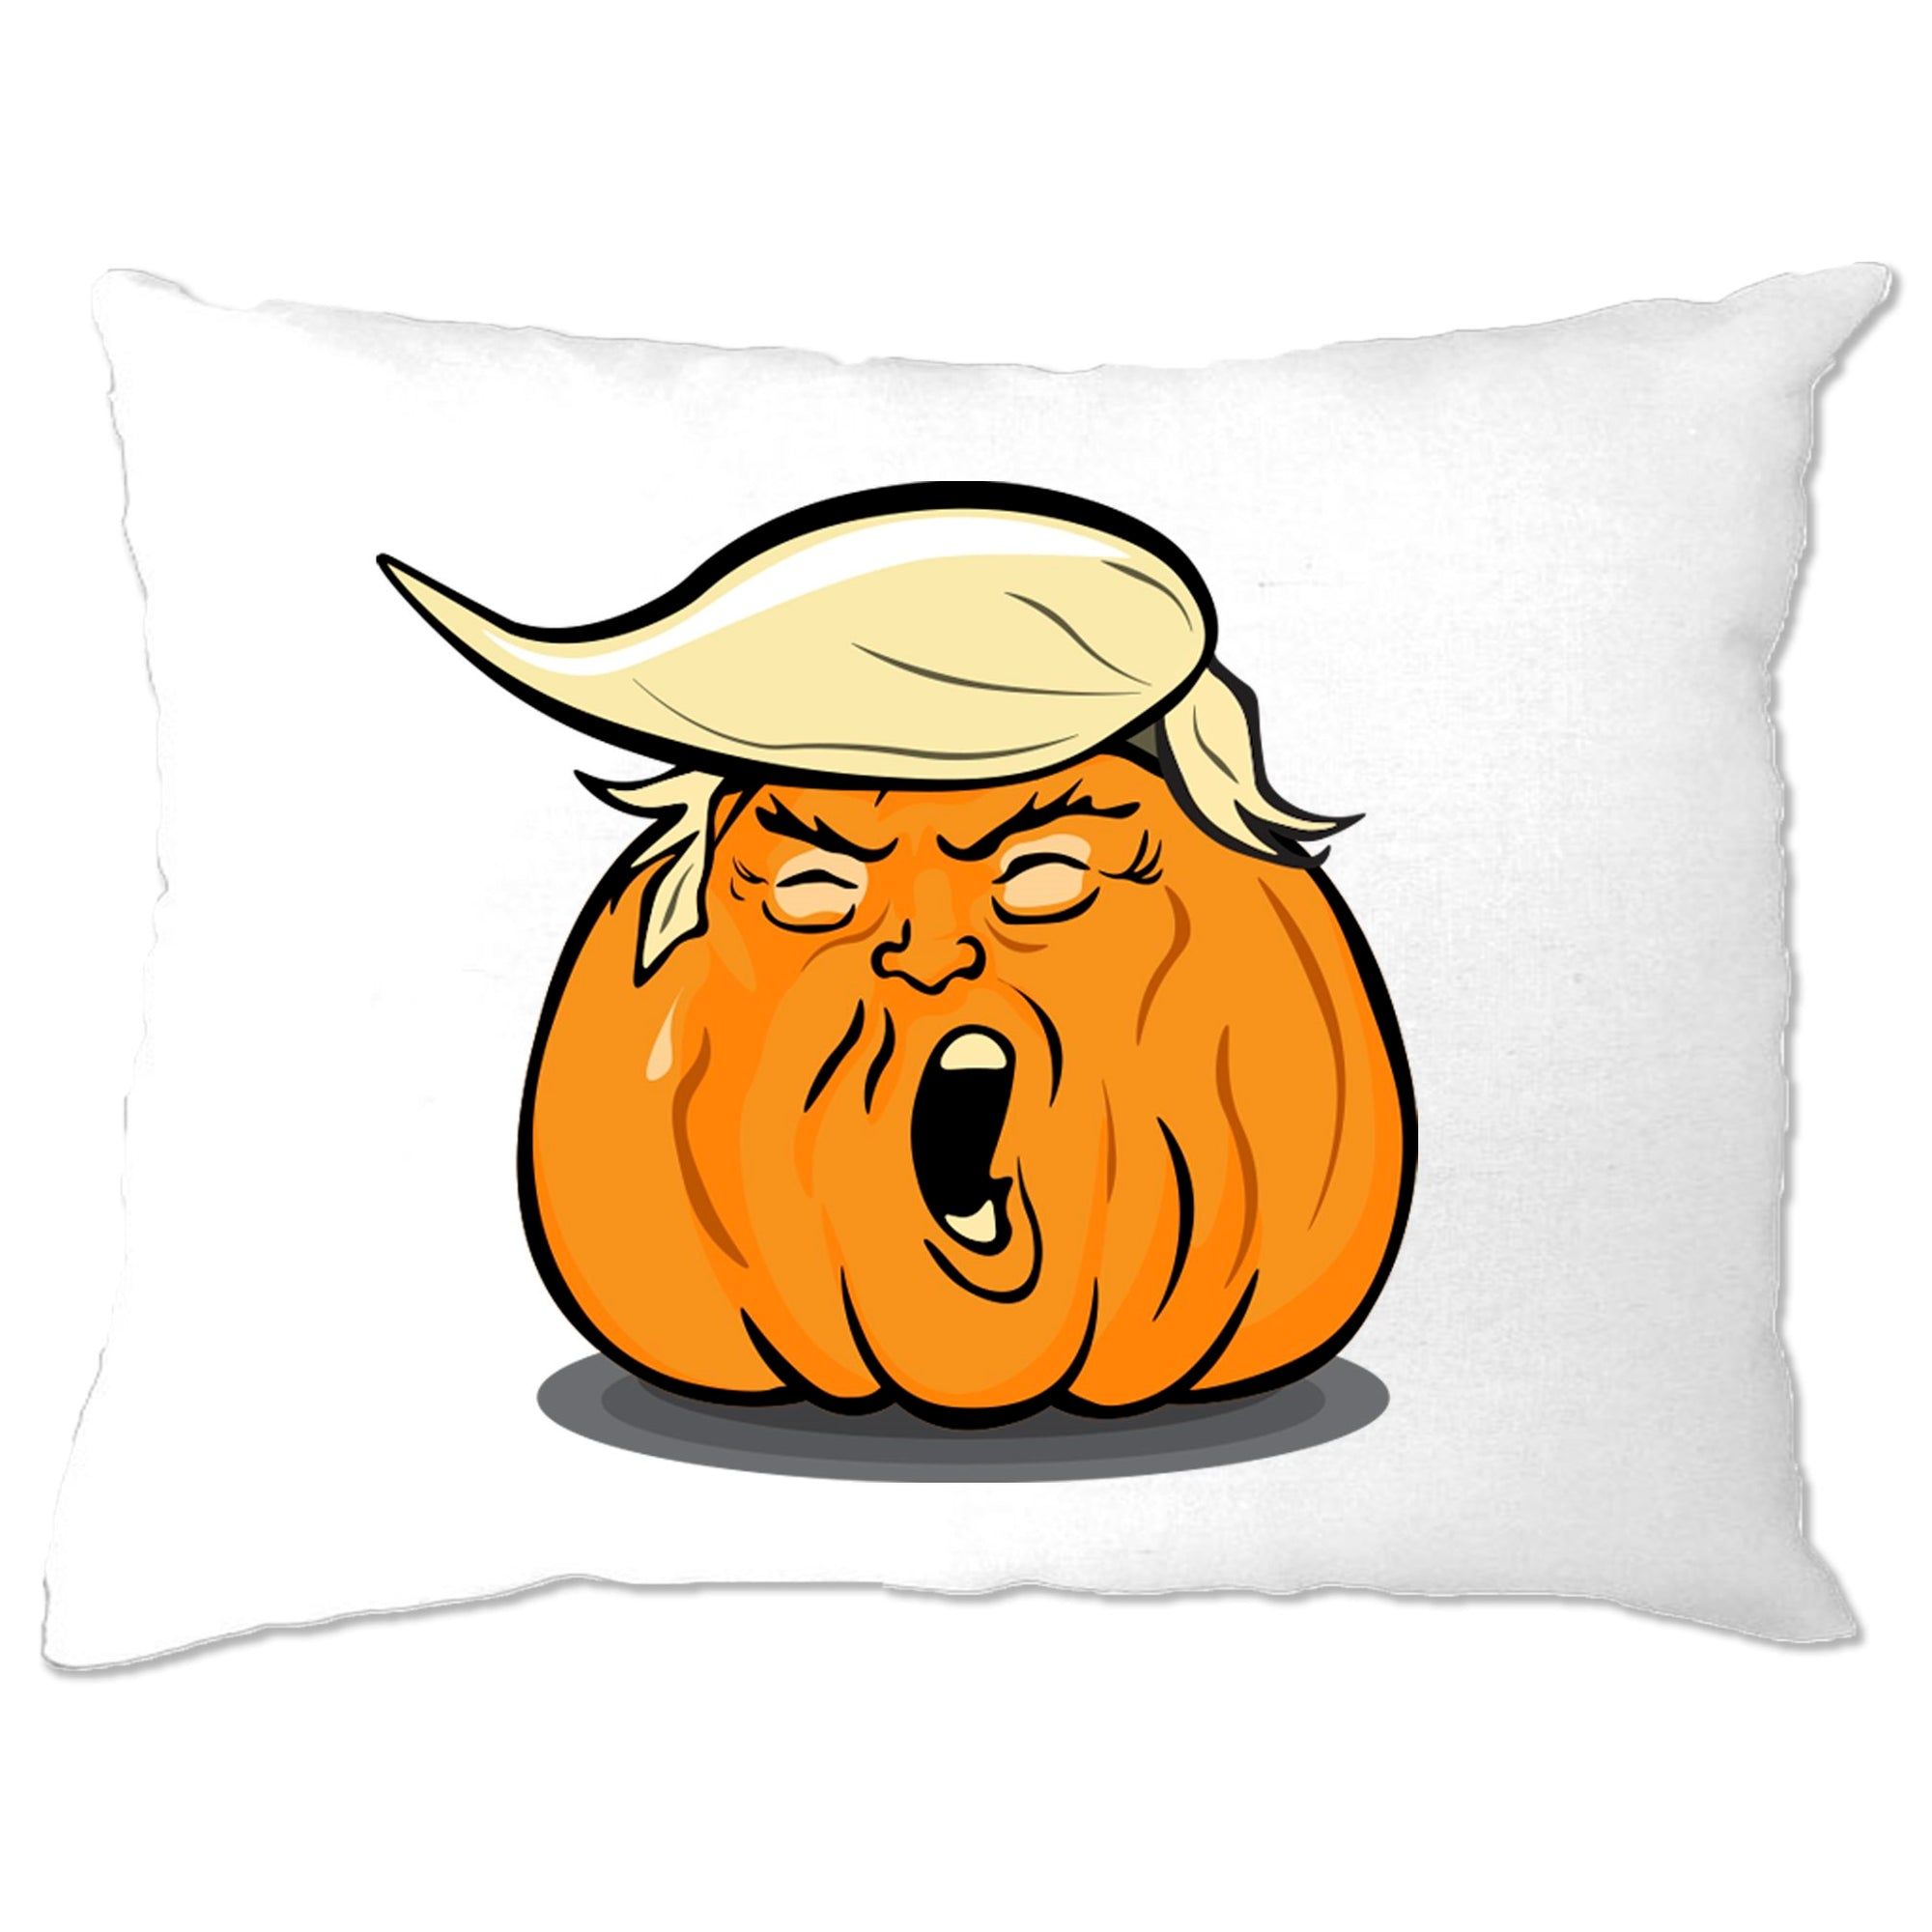 Donald Trump Pillow Case Haloween Trumpkin Joke